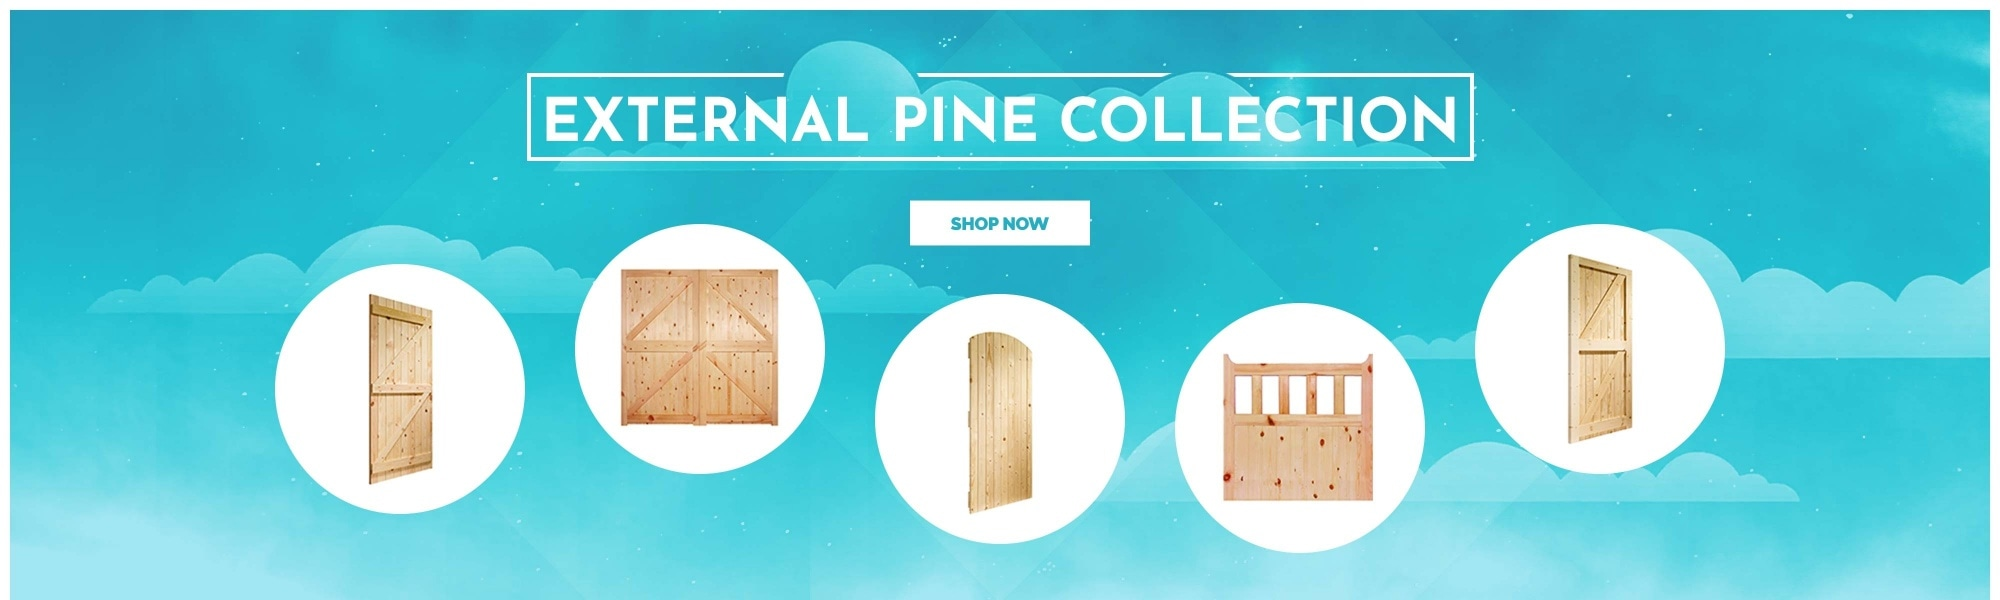 External Pine Collection